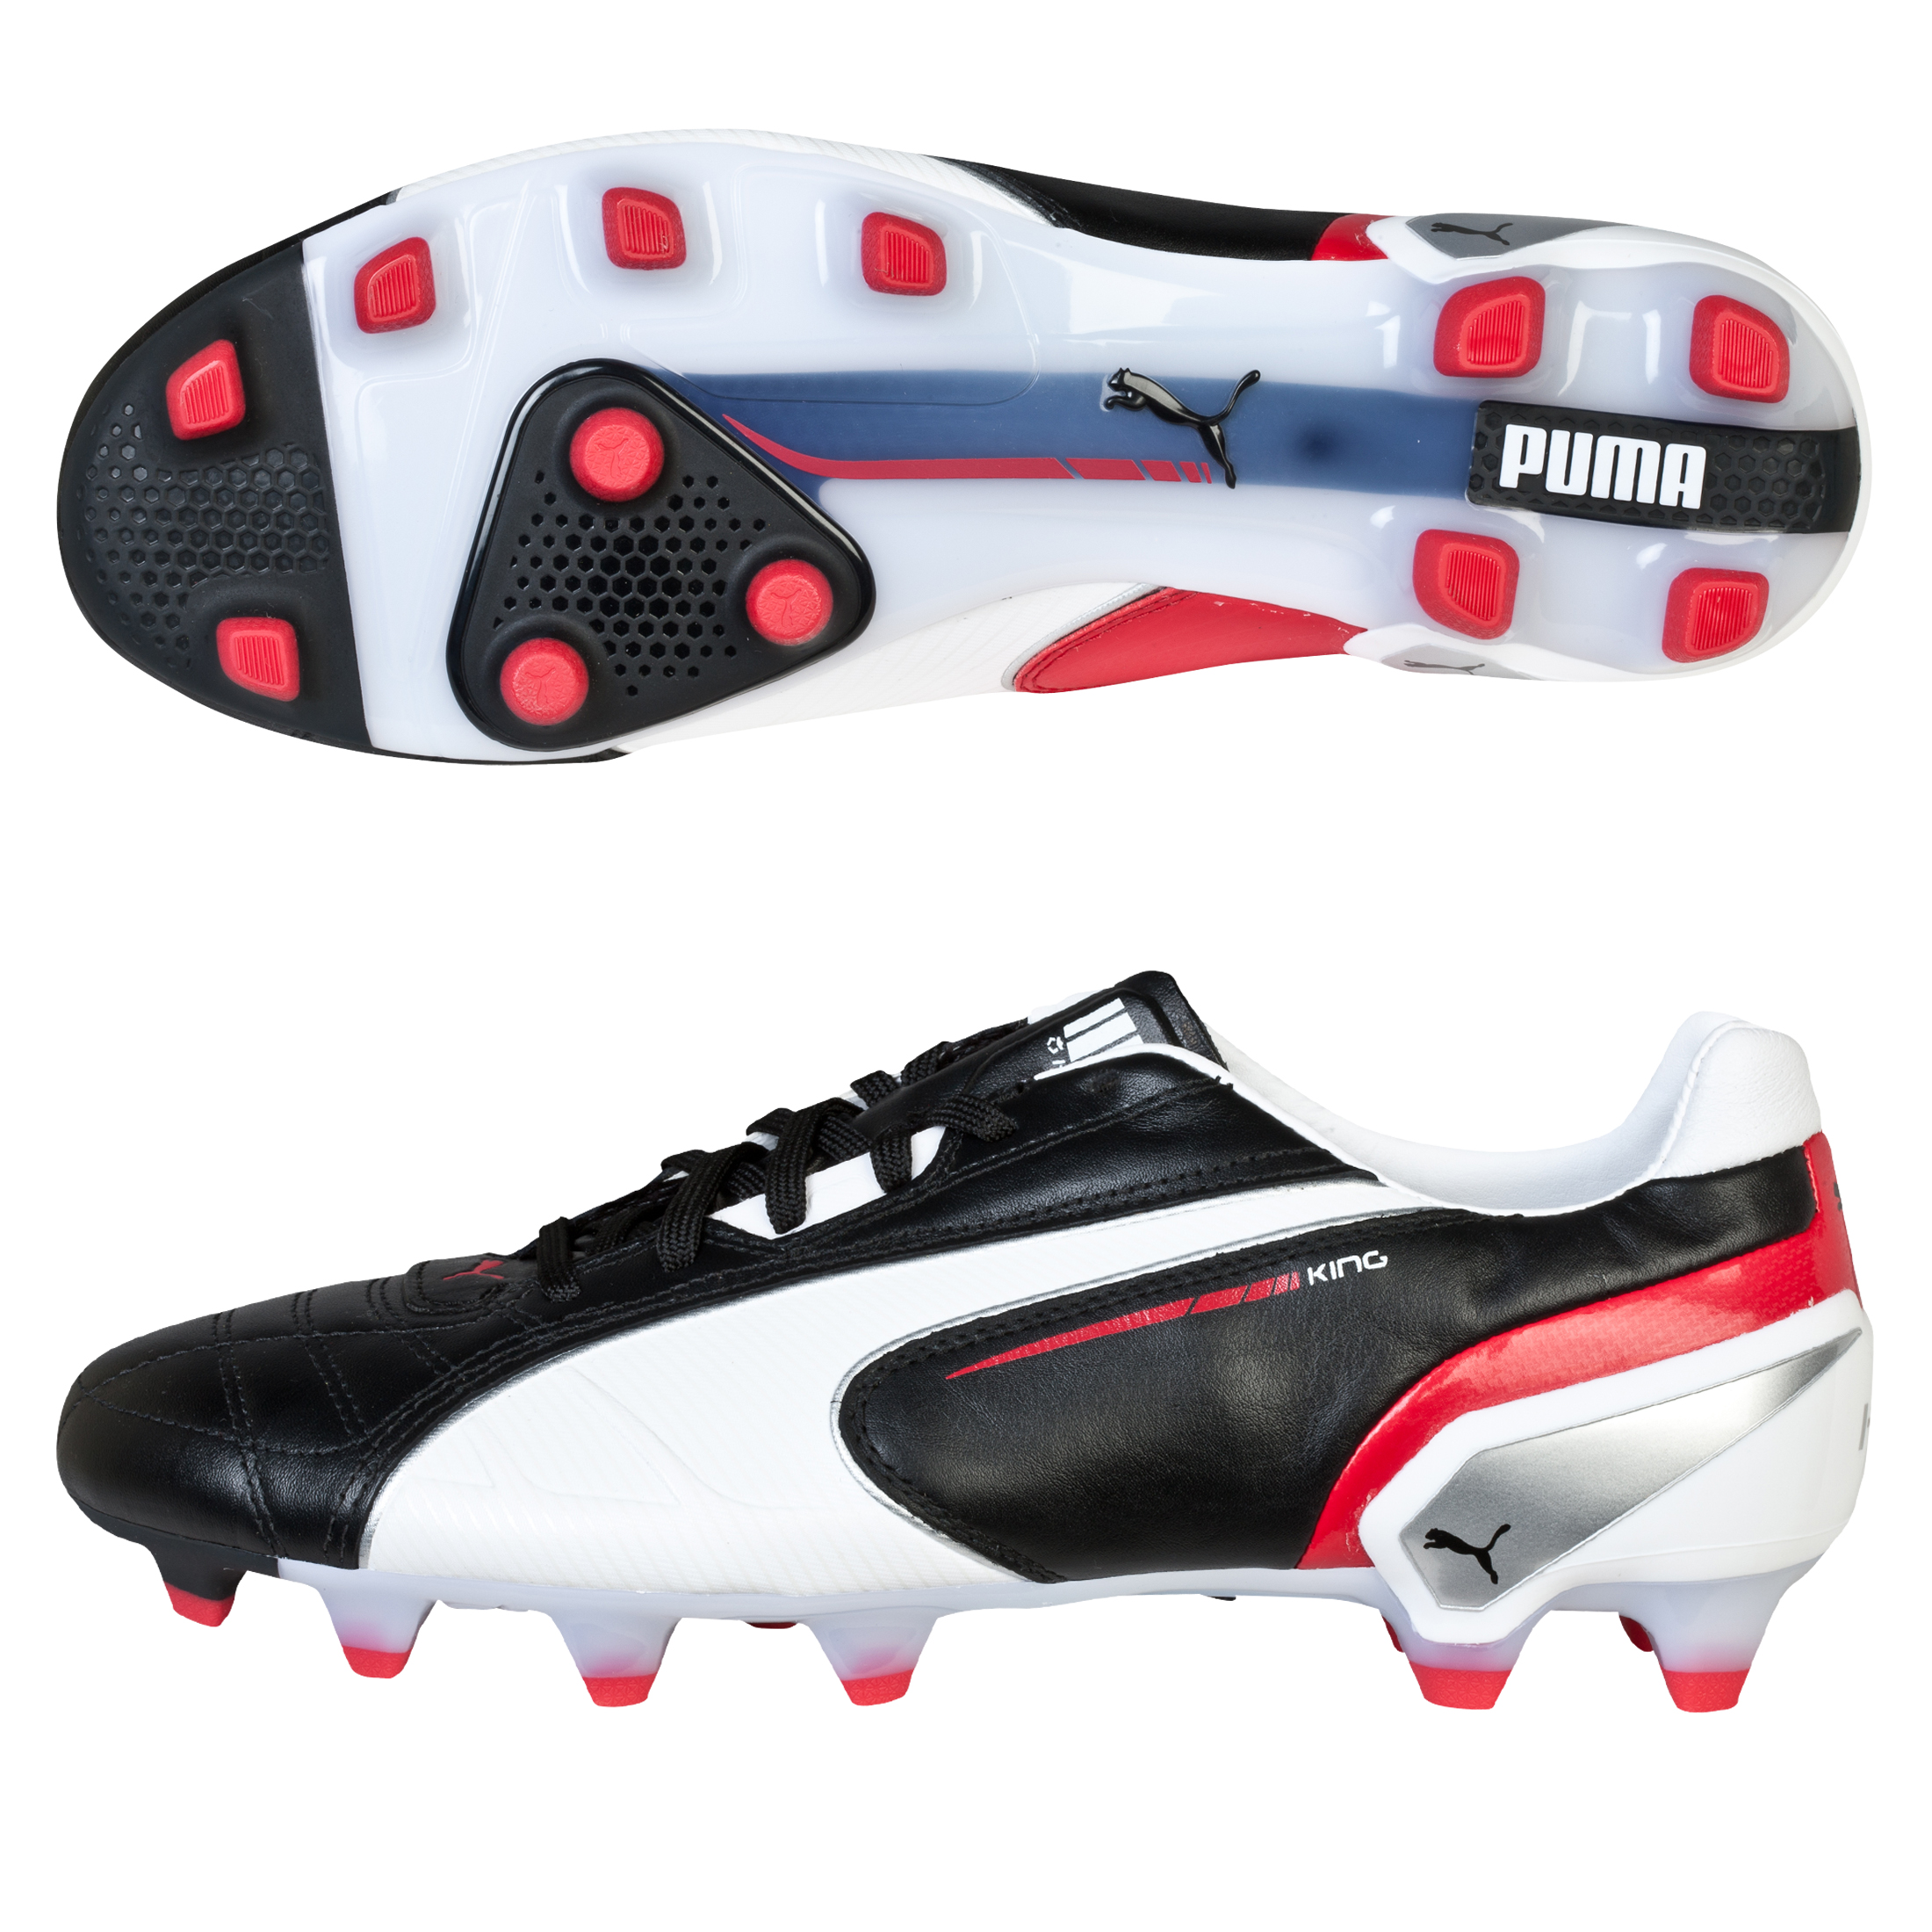 Puma King Firm Ground Football Boots - Black/White/Ribbon Red